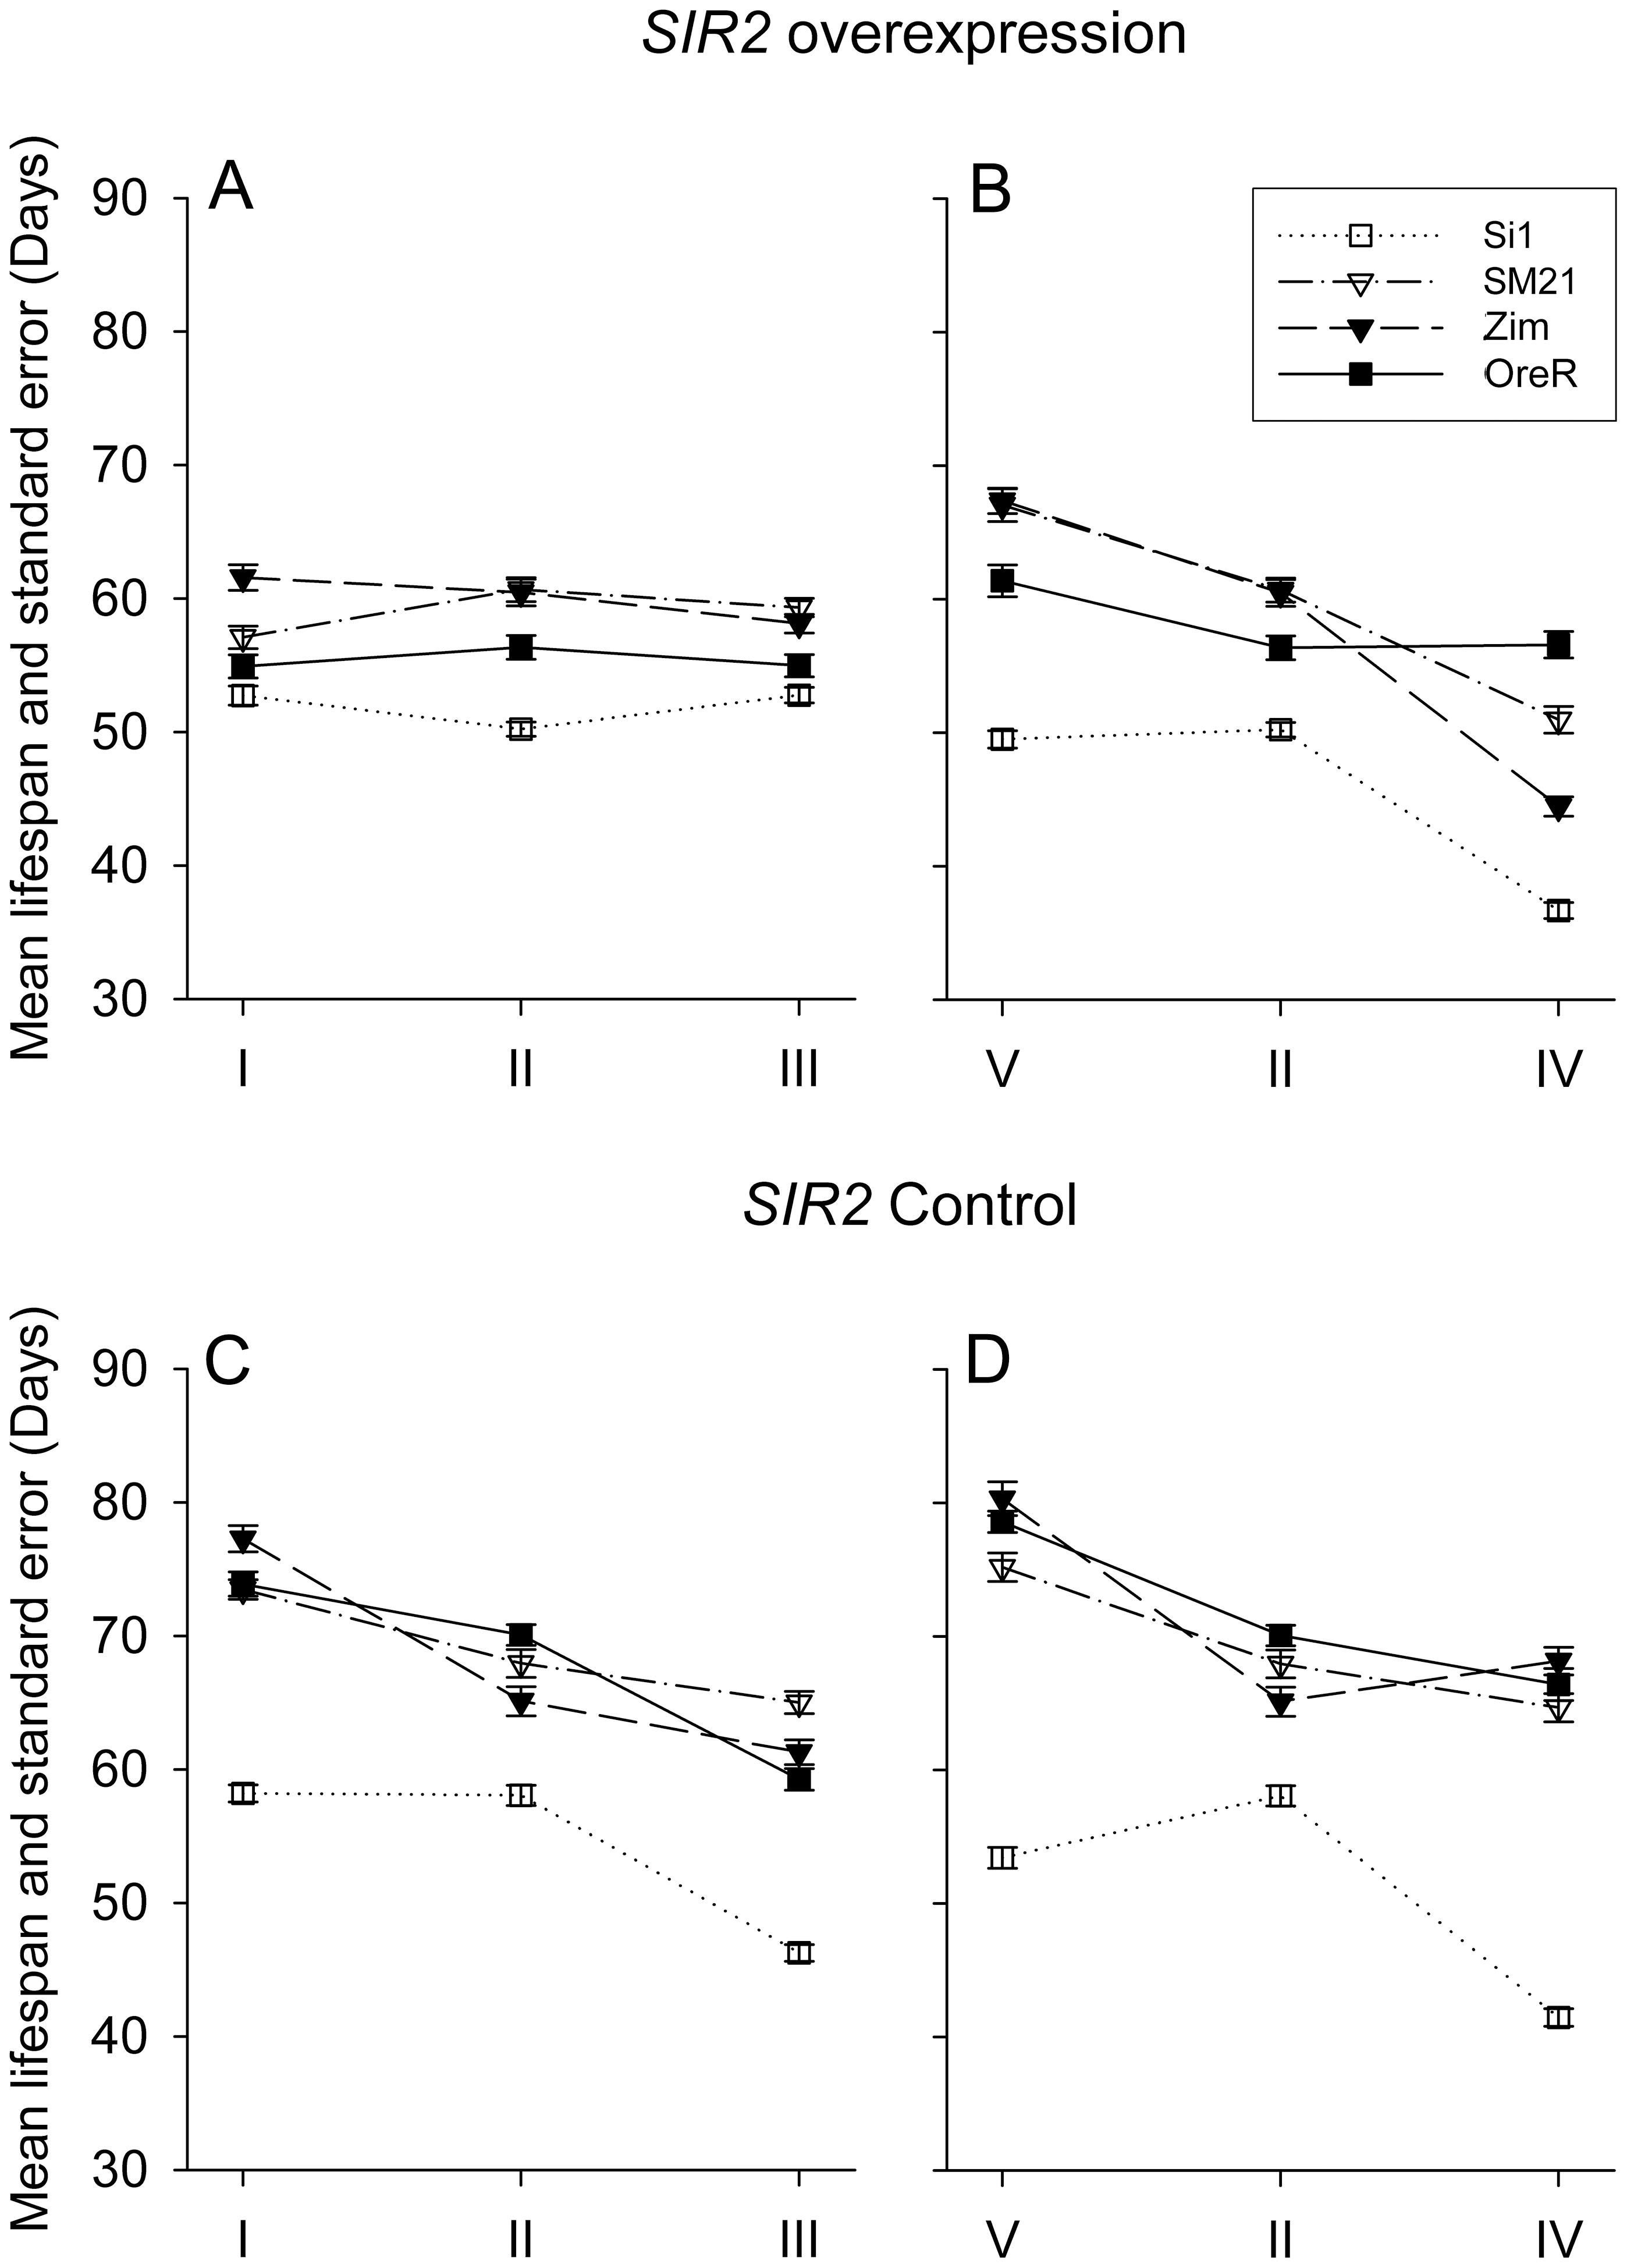 Mean lifespan and standard error of <i>SIR2</i> overexpression (A and B panels) and control (C and D panels) genotypes in different mitotype background.